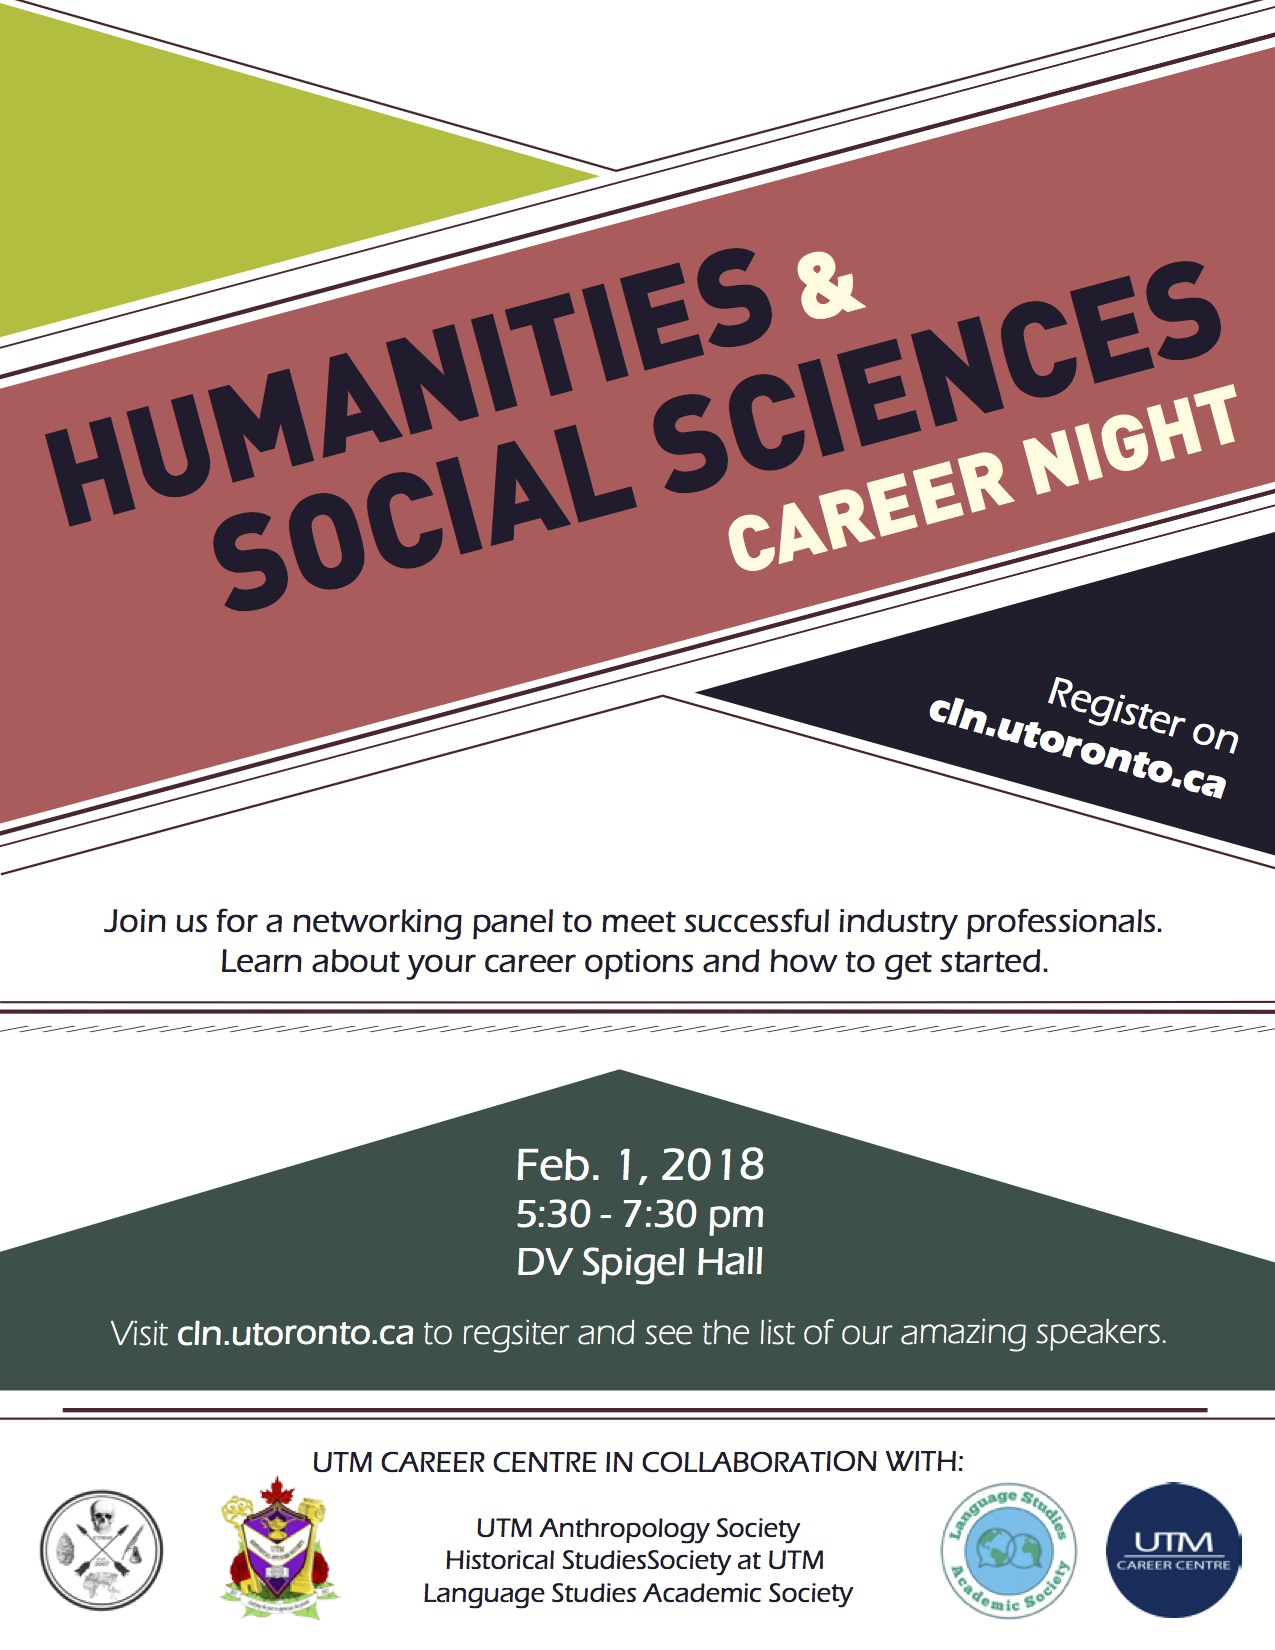 Humanities and Social Science Career Networking Night Feb. 1, 2018